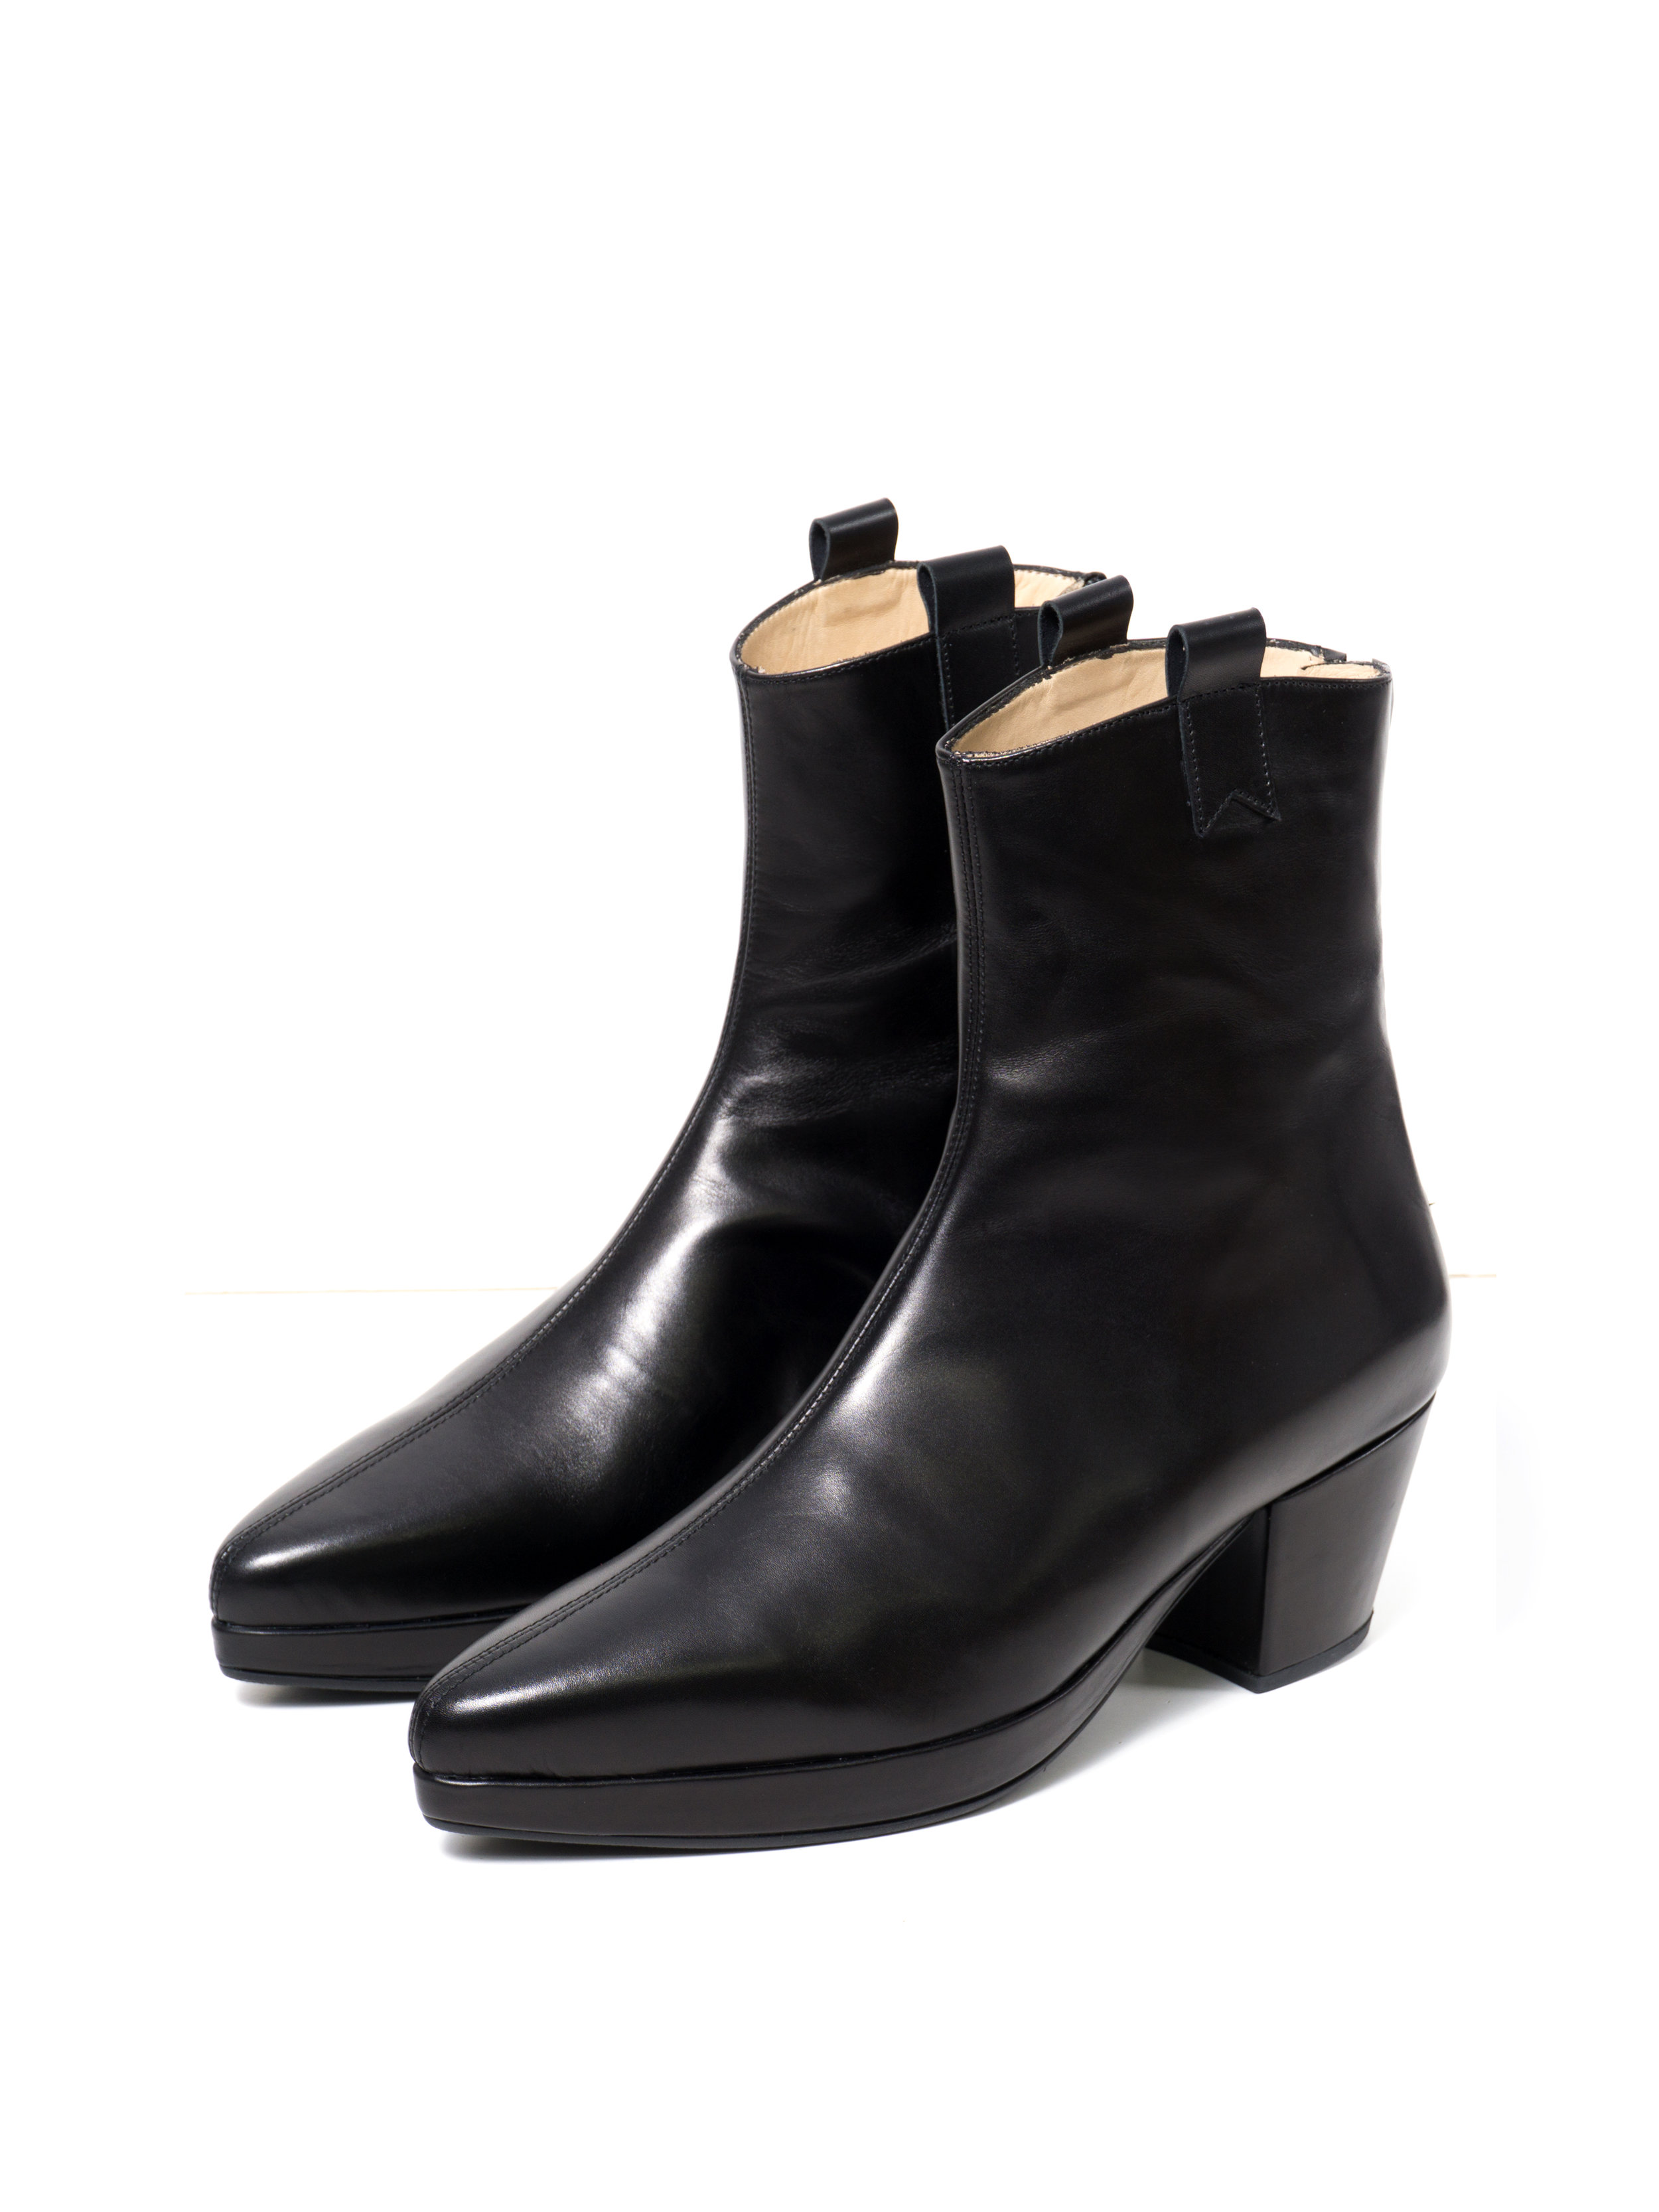 67425a7ddbad9 Ankle Boots High Nero — Rani Bageria